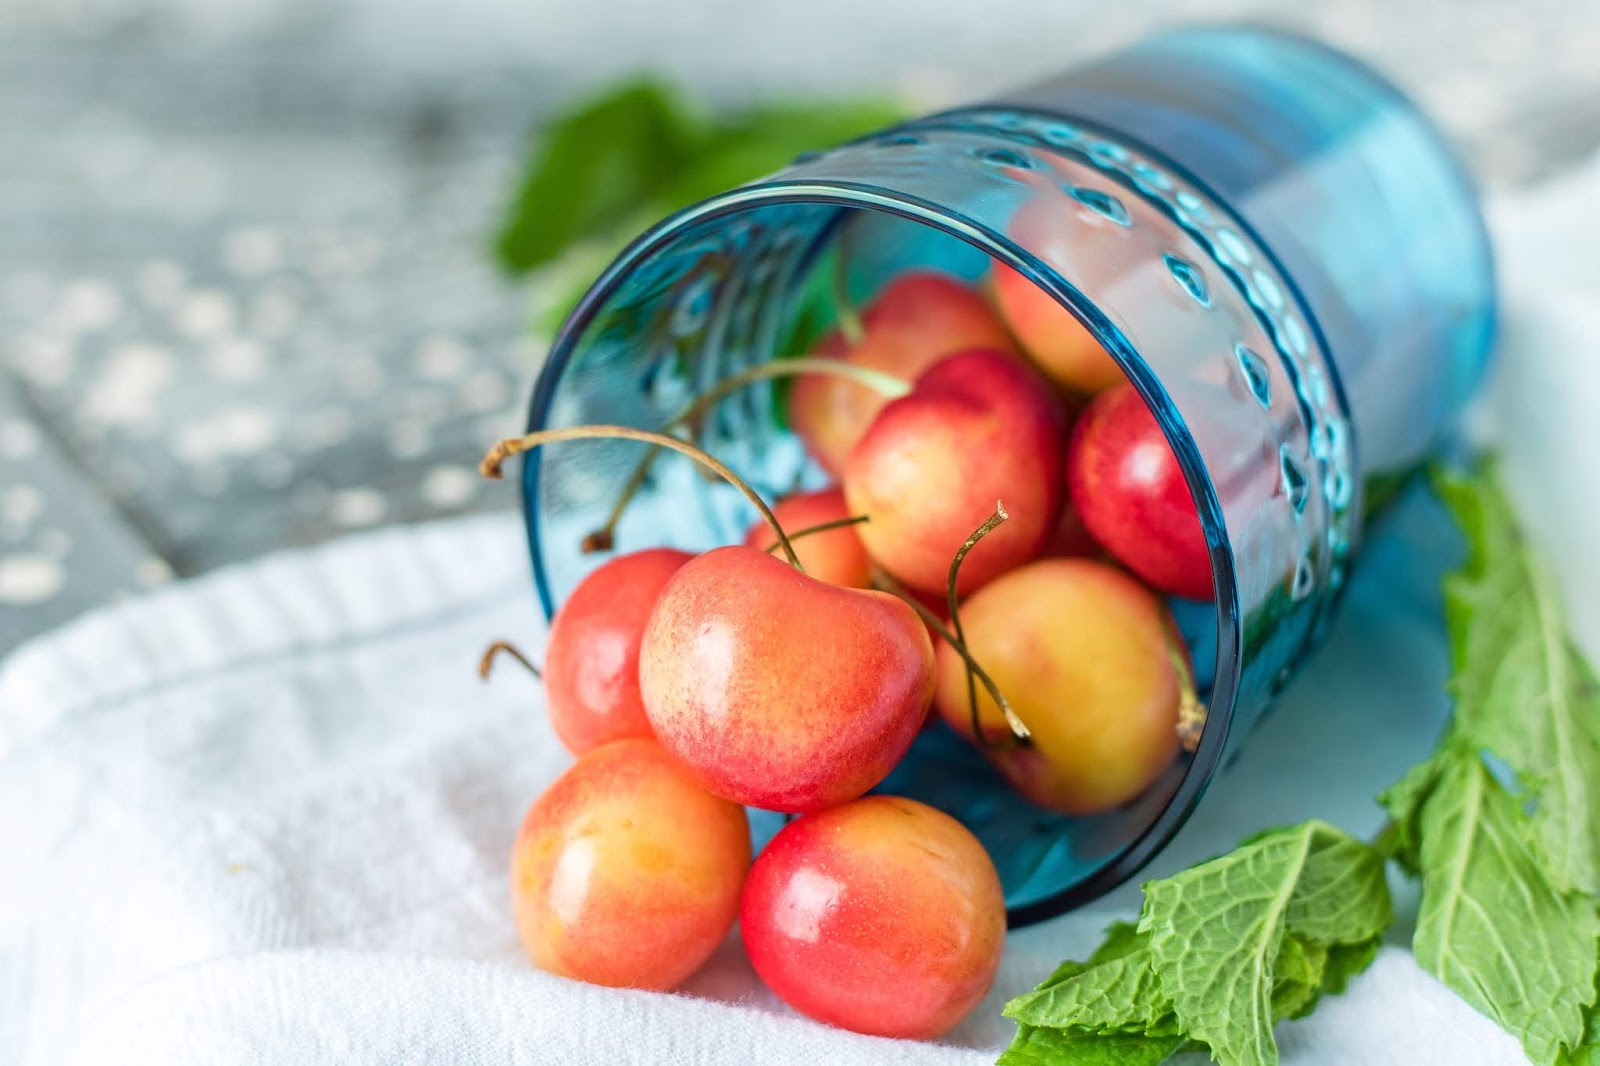 Eating Fruits that helps in hydration